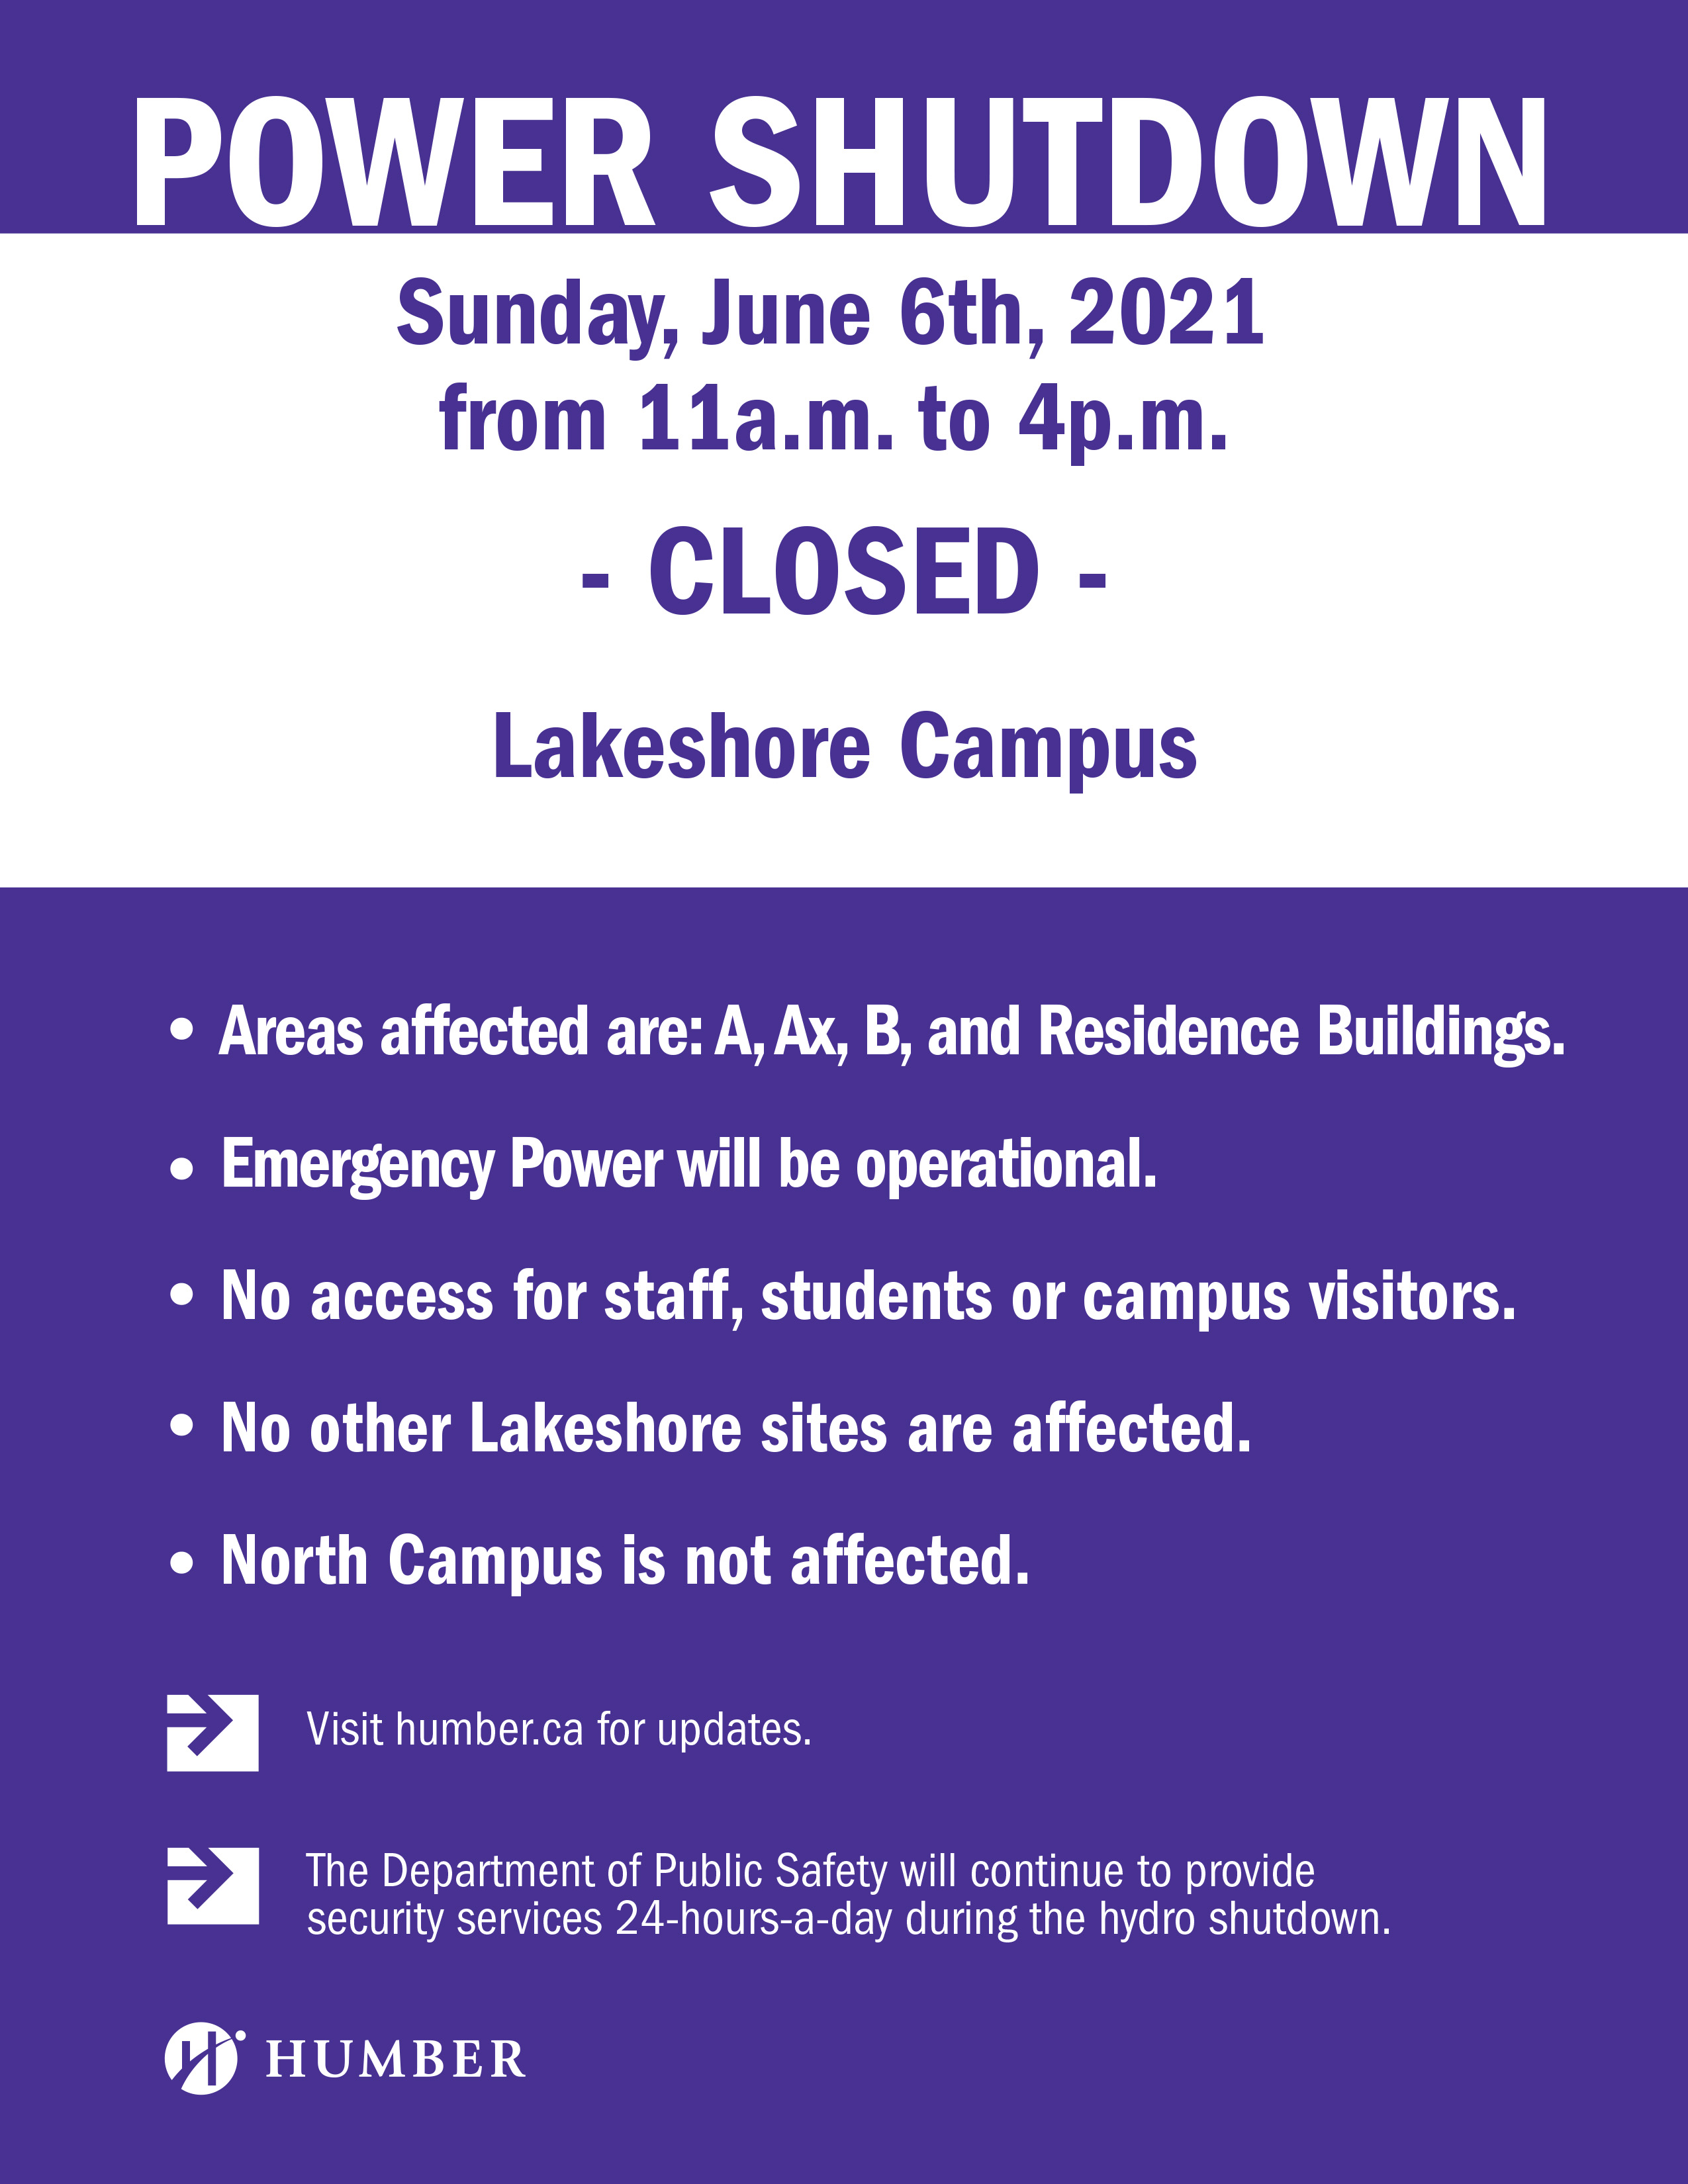 Notice of Planned Hydro Service Interruption - Lakeshore Campus: Lakeshore Campus to be closed on June 6.